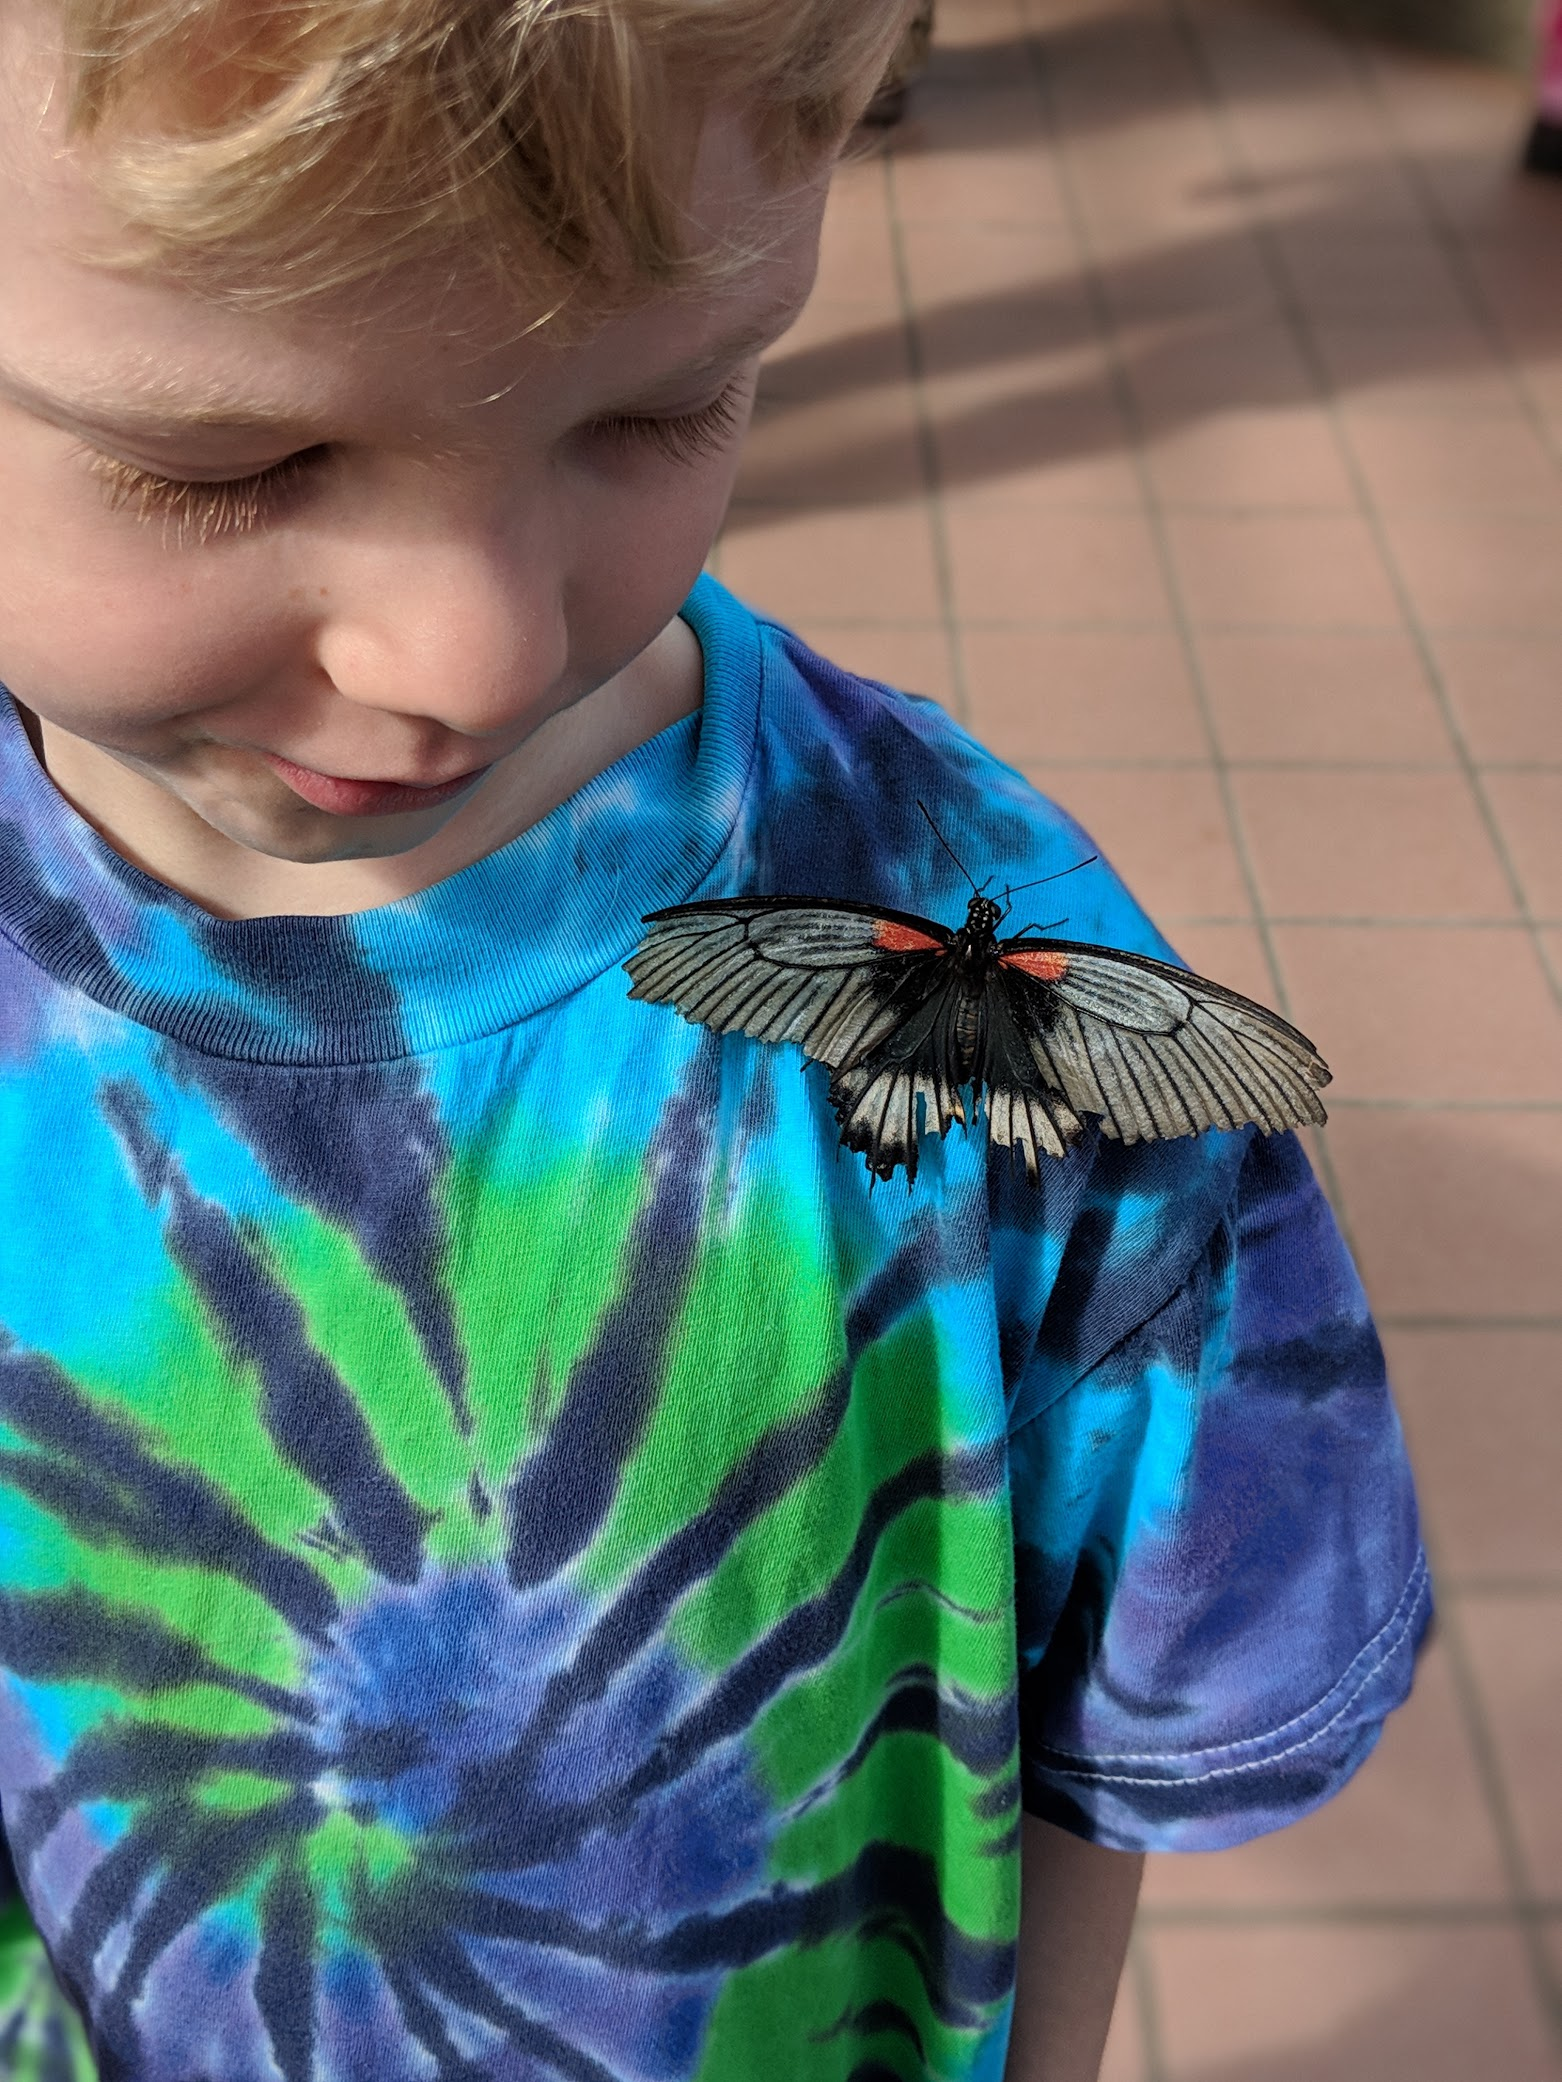 We went to the Botanical Gardens this week and enjoyed the Butterflies Go Free exhibit.